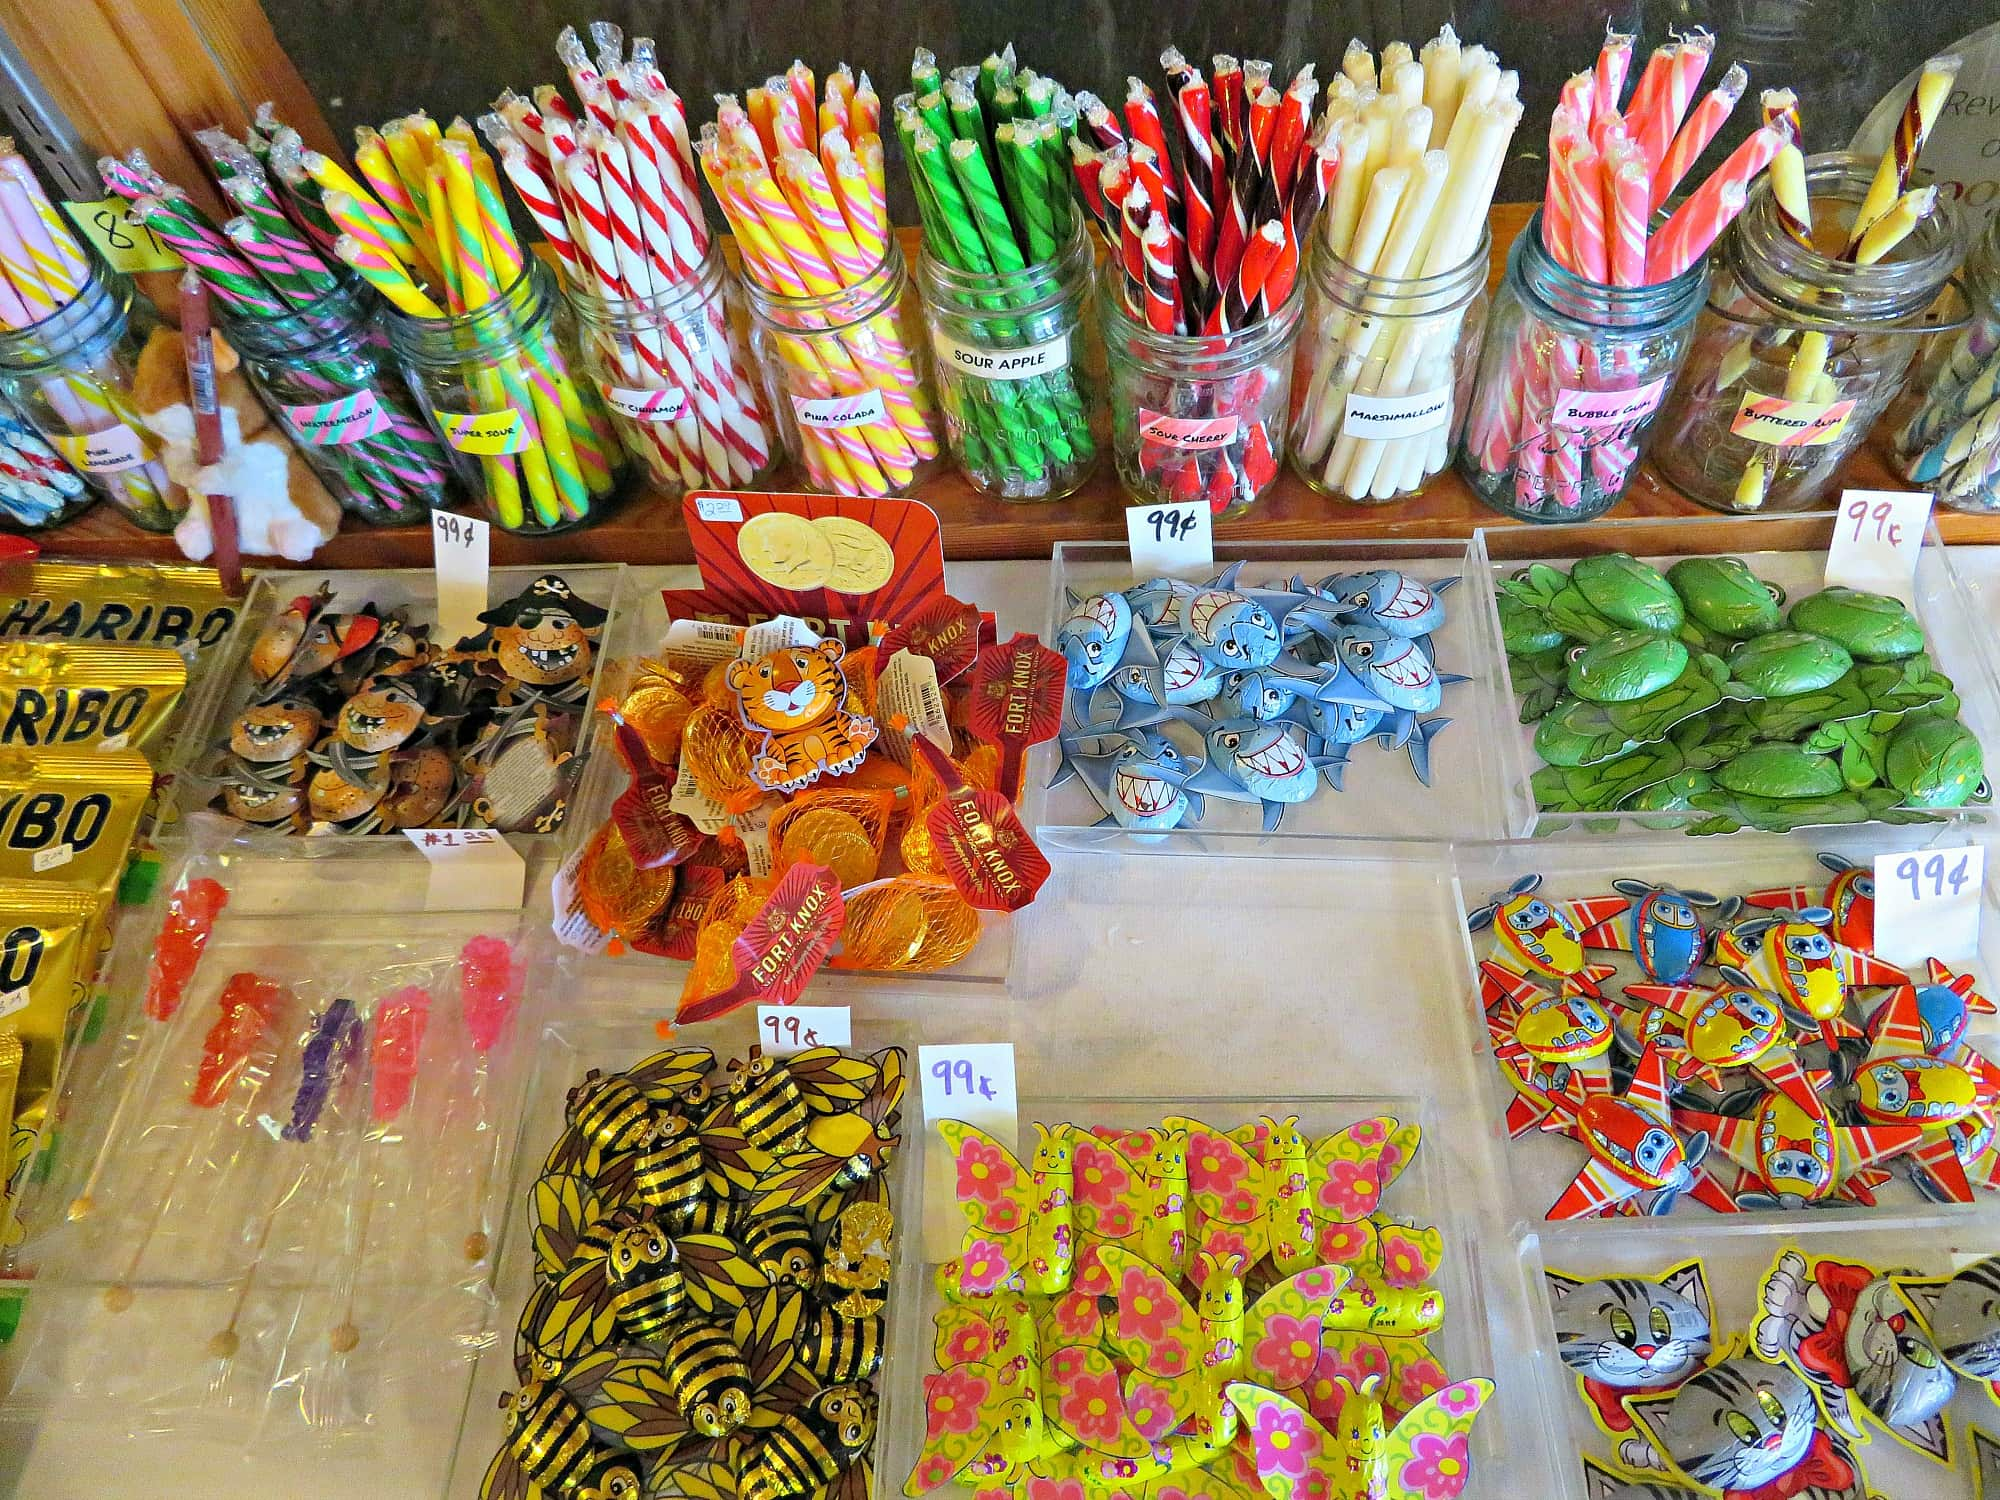 Some of the colorful candies at Hepzibah's Sweet Shop in Duluth with kids